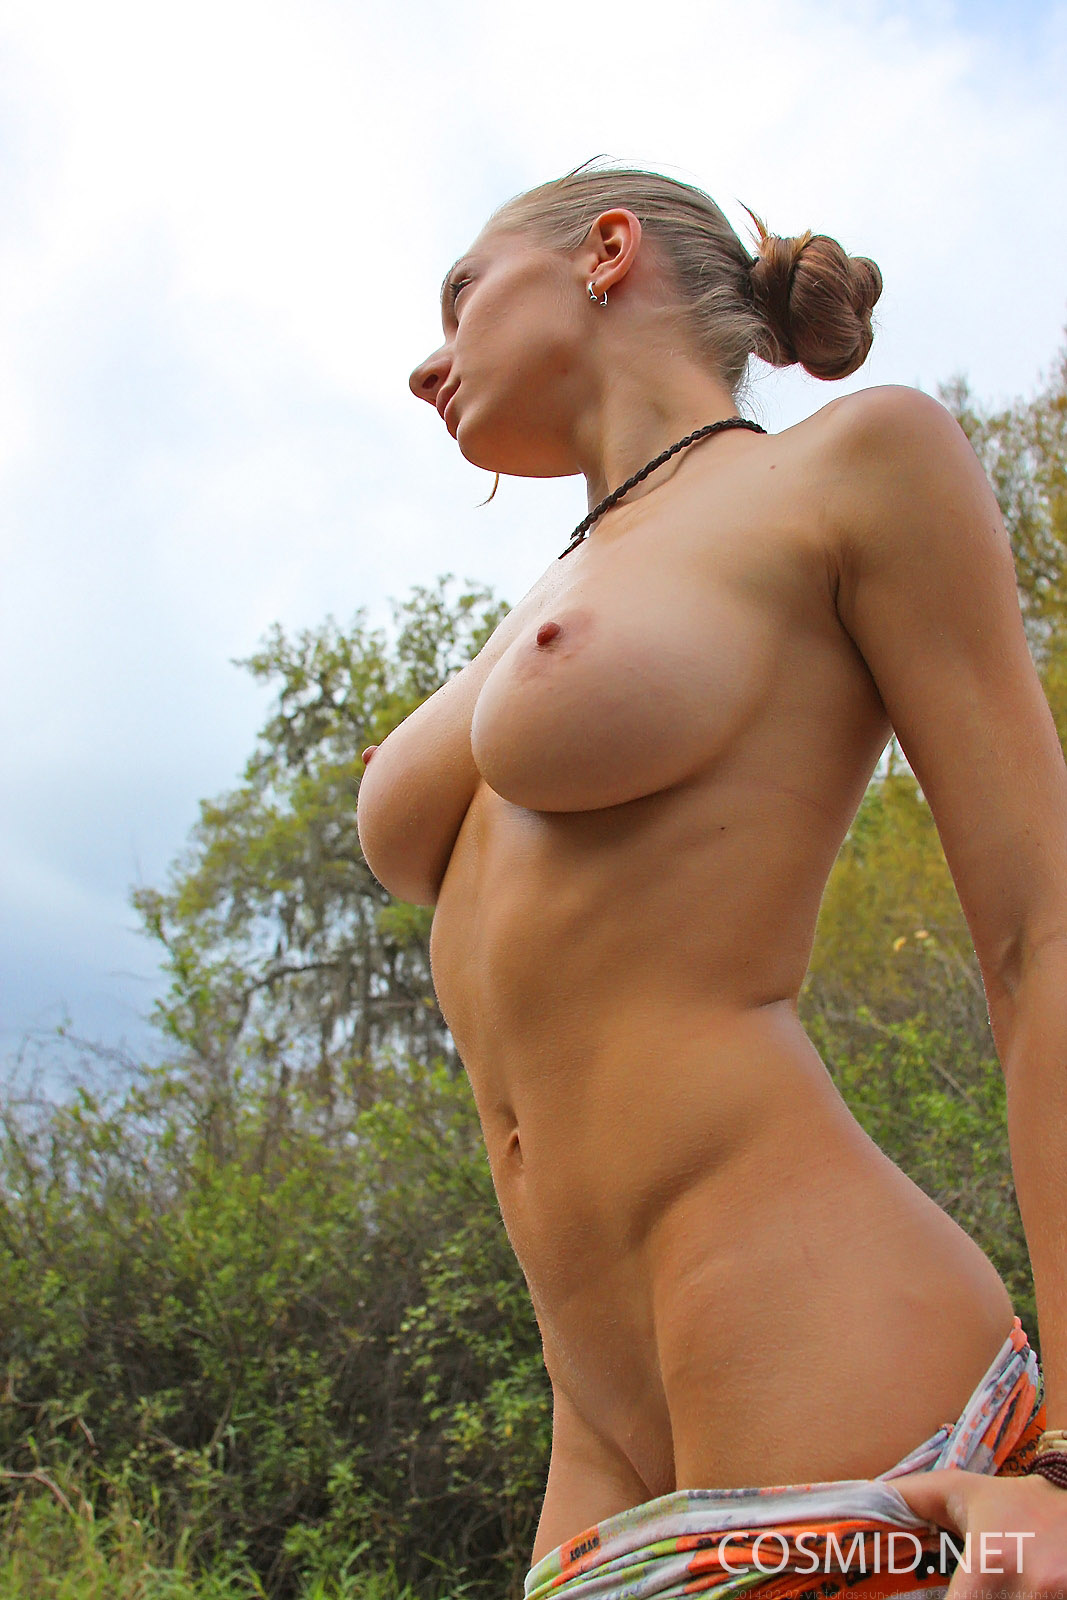 Pussy Aroused Canadian Girls Pussy Fucking Pussy Picture